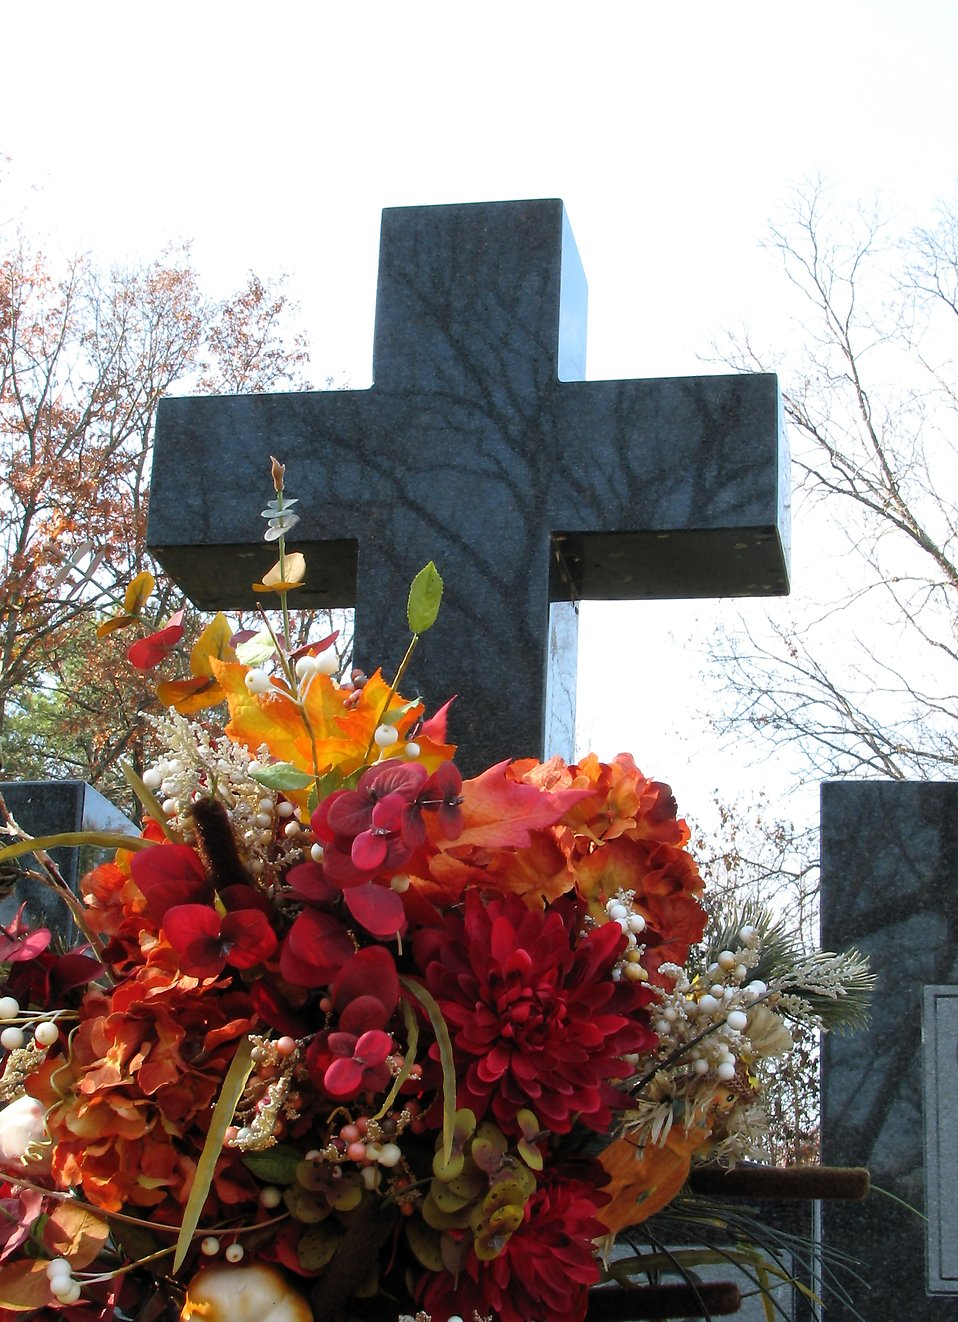 Flowers by a cross in a cemetary : Free Stock Photo